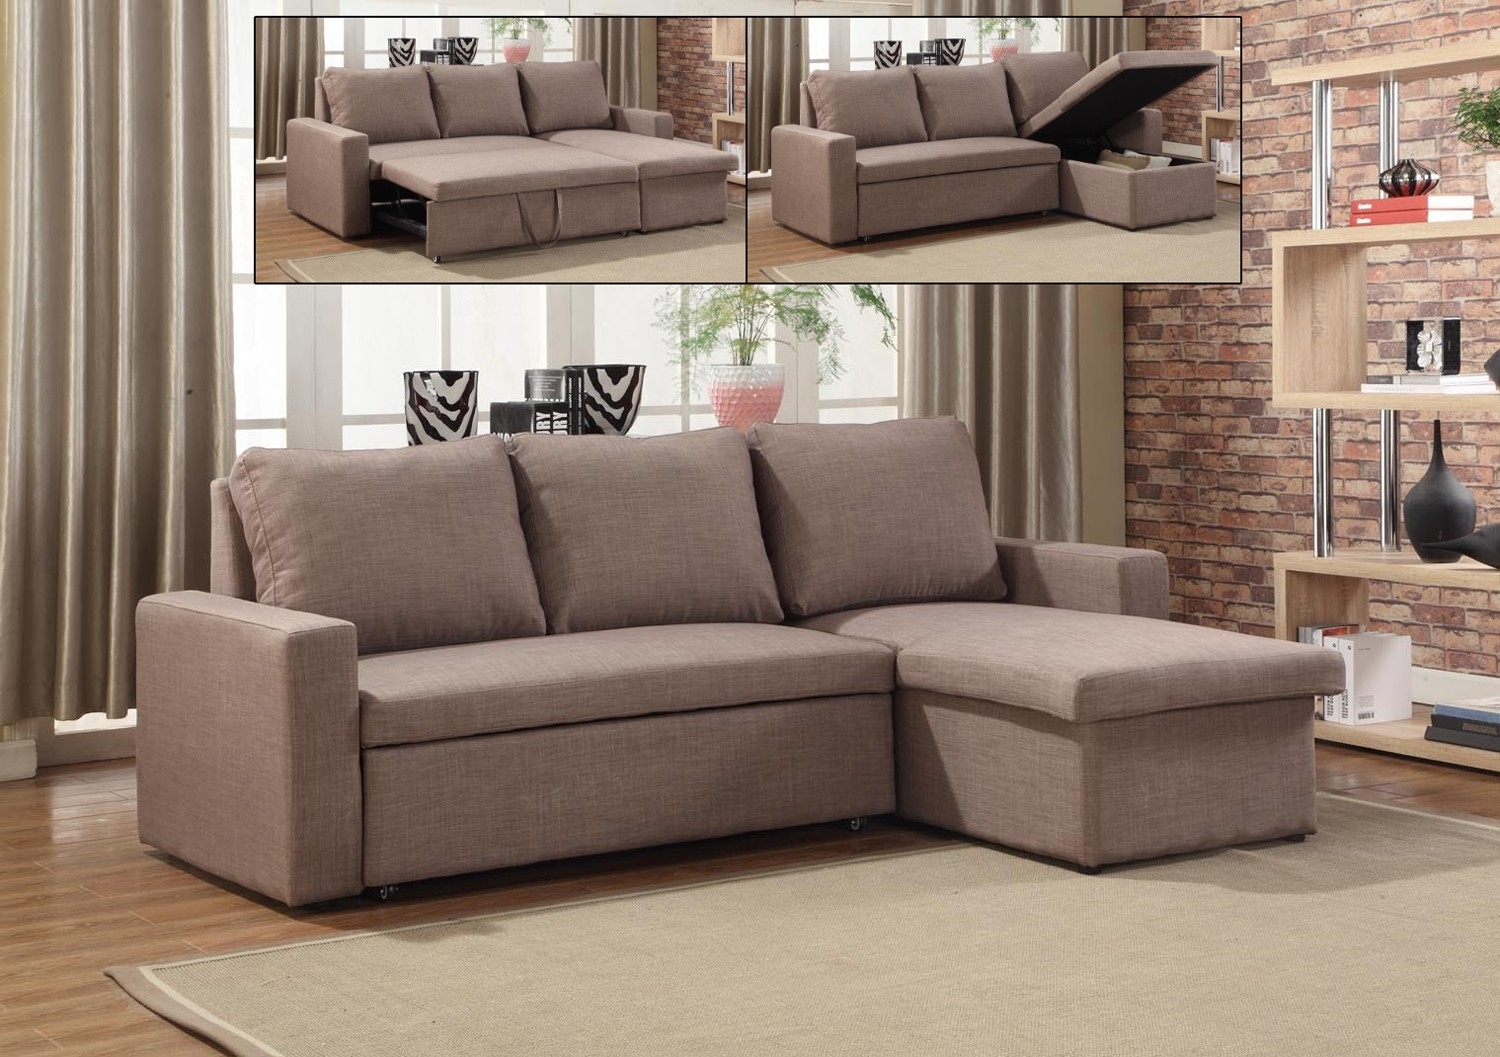 If-9001 -Sectional Sofa Bed With Reversible Chaise - Lowest Price in Sectional Sofas At Brampton (Image 7 of 15)